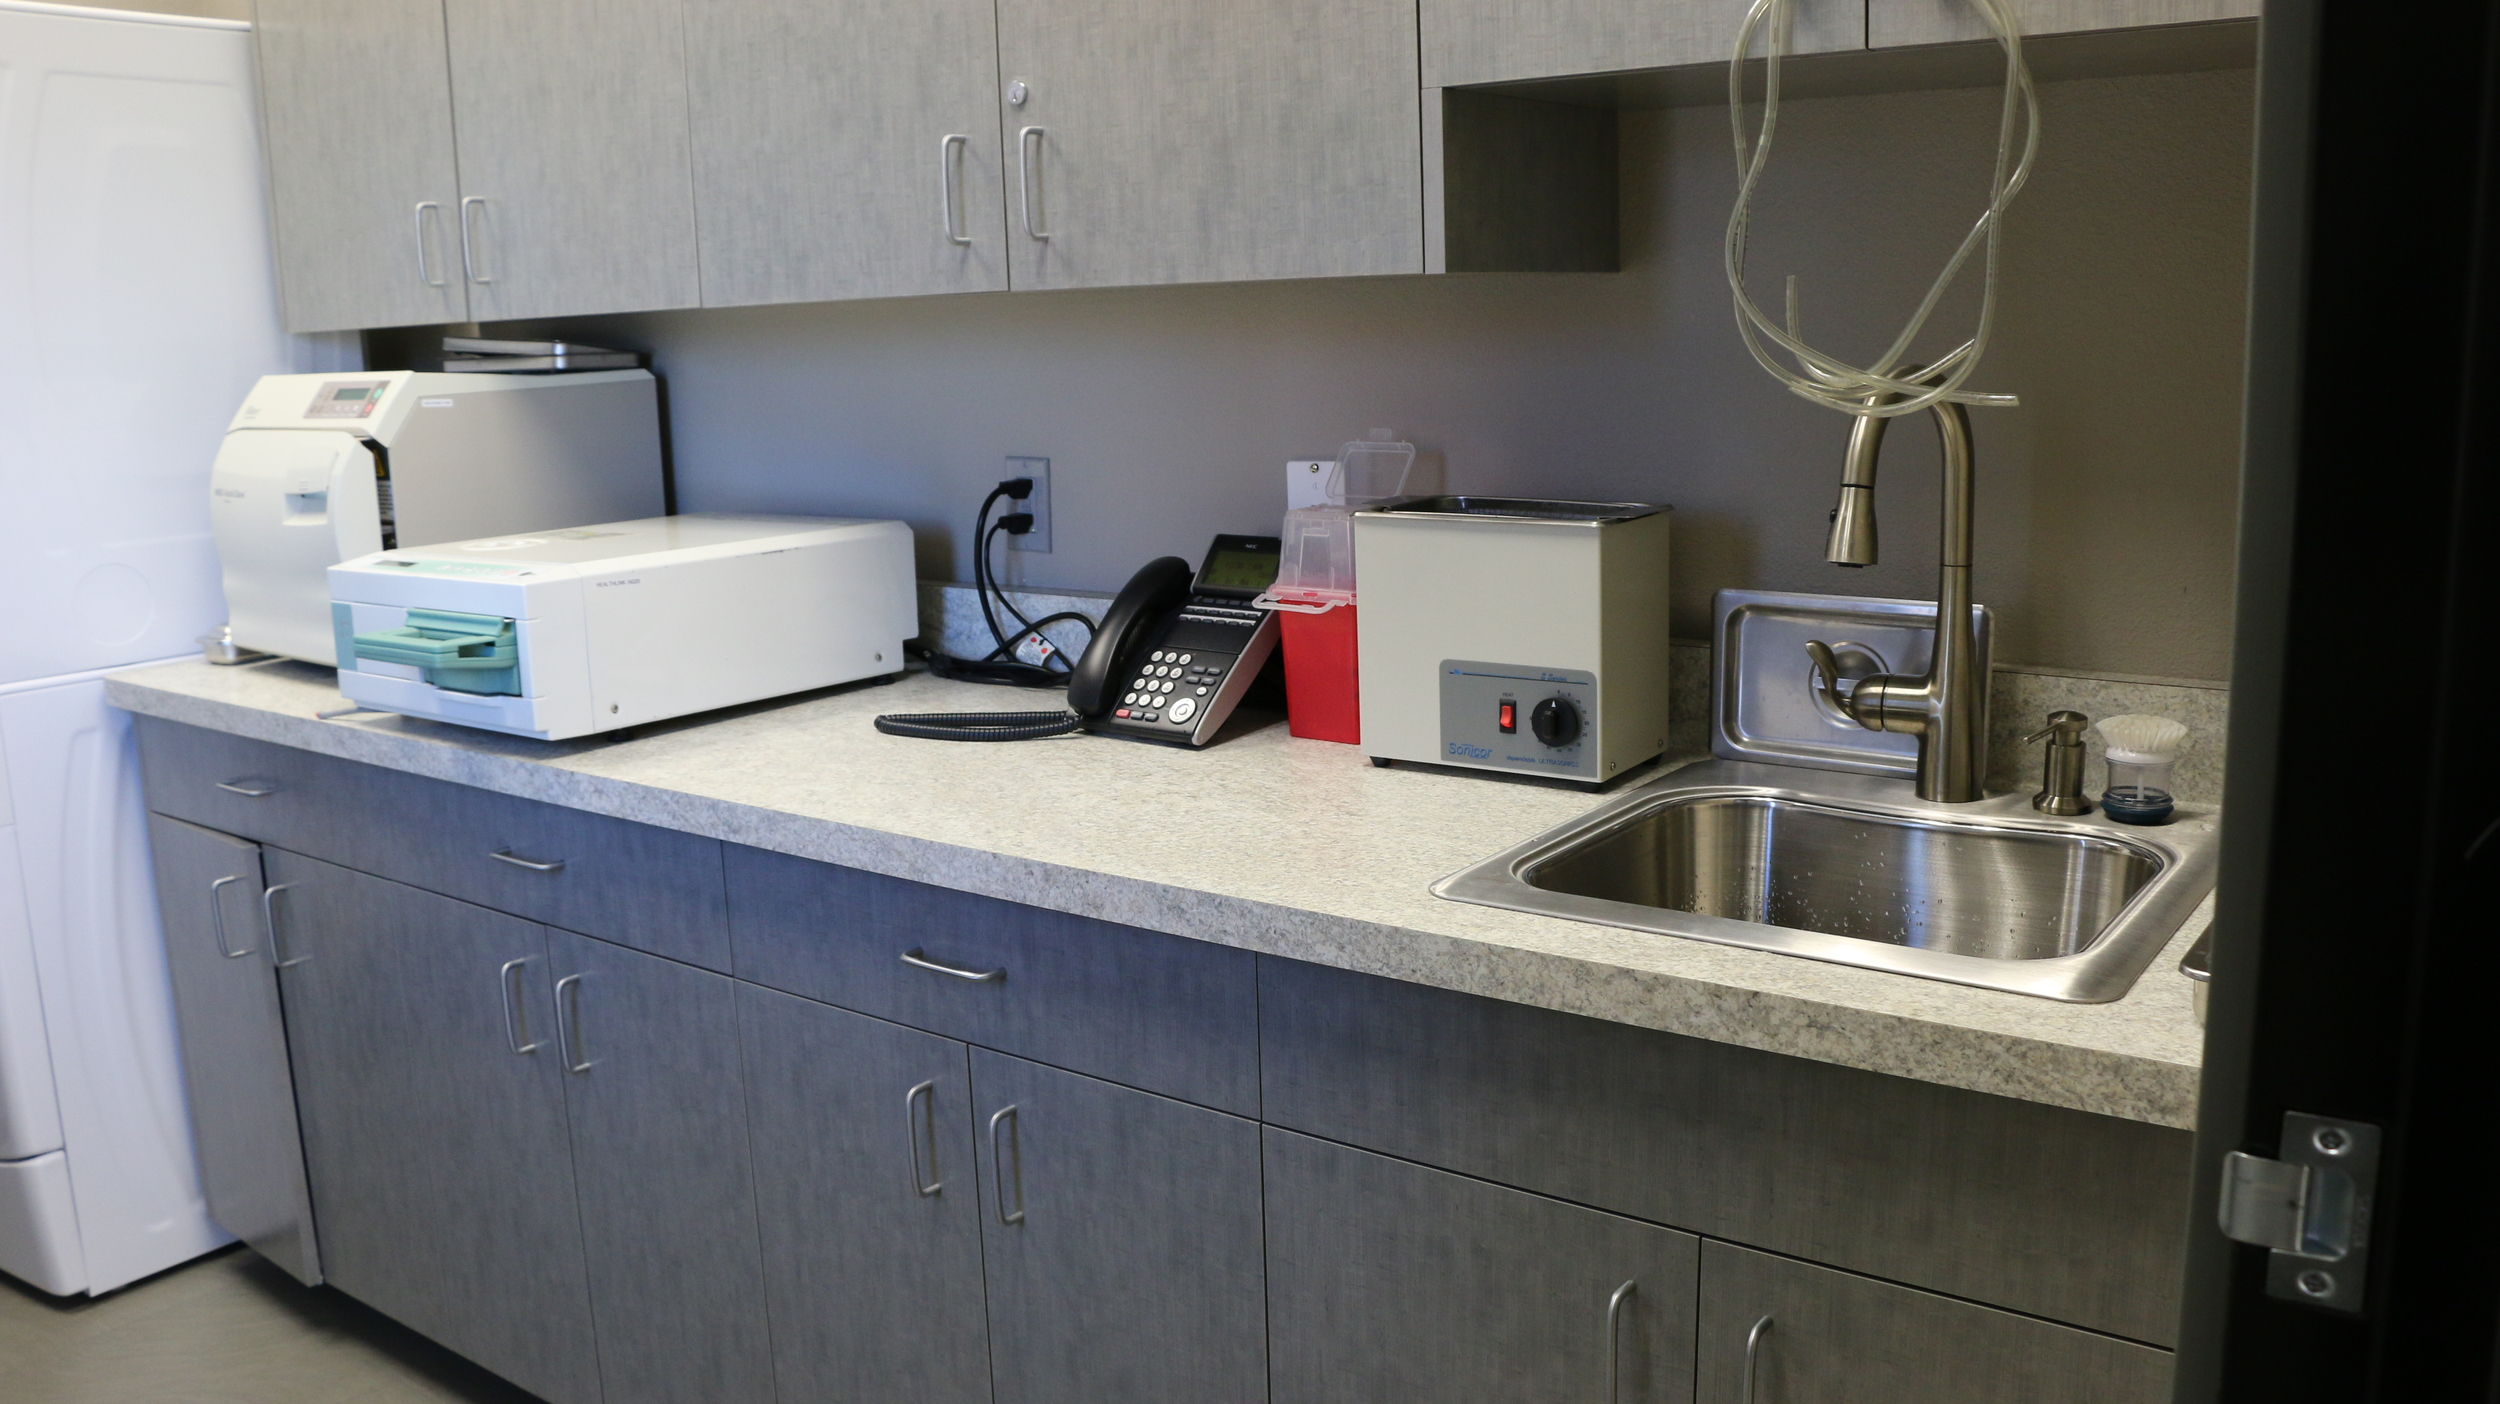 We take infection control seriously. We have an entire core area dedicated to instrument sterilization and sterile supplies.